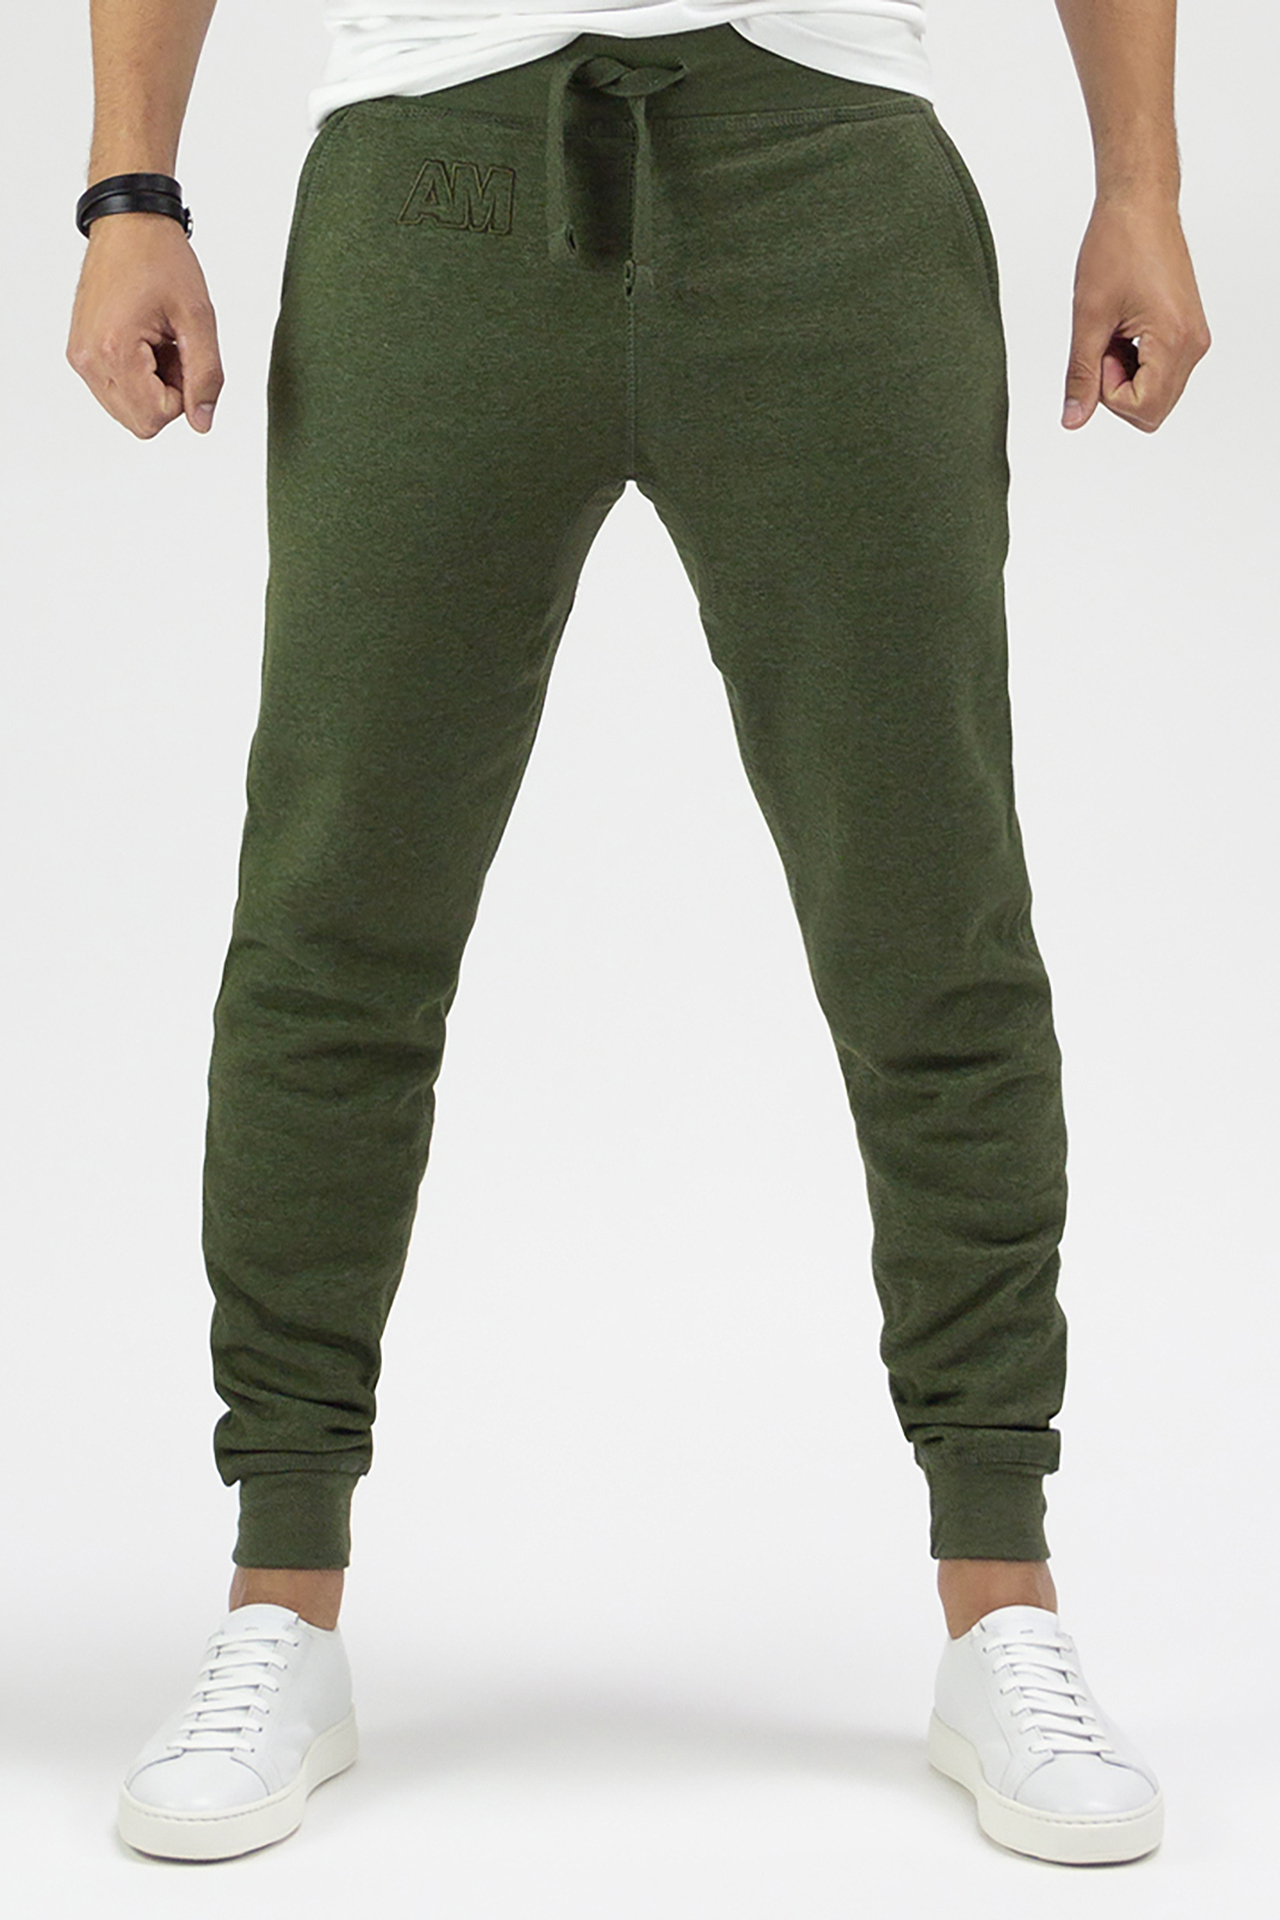 AM Jogger Sweatpants in Heather Green